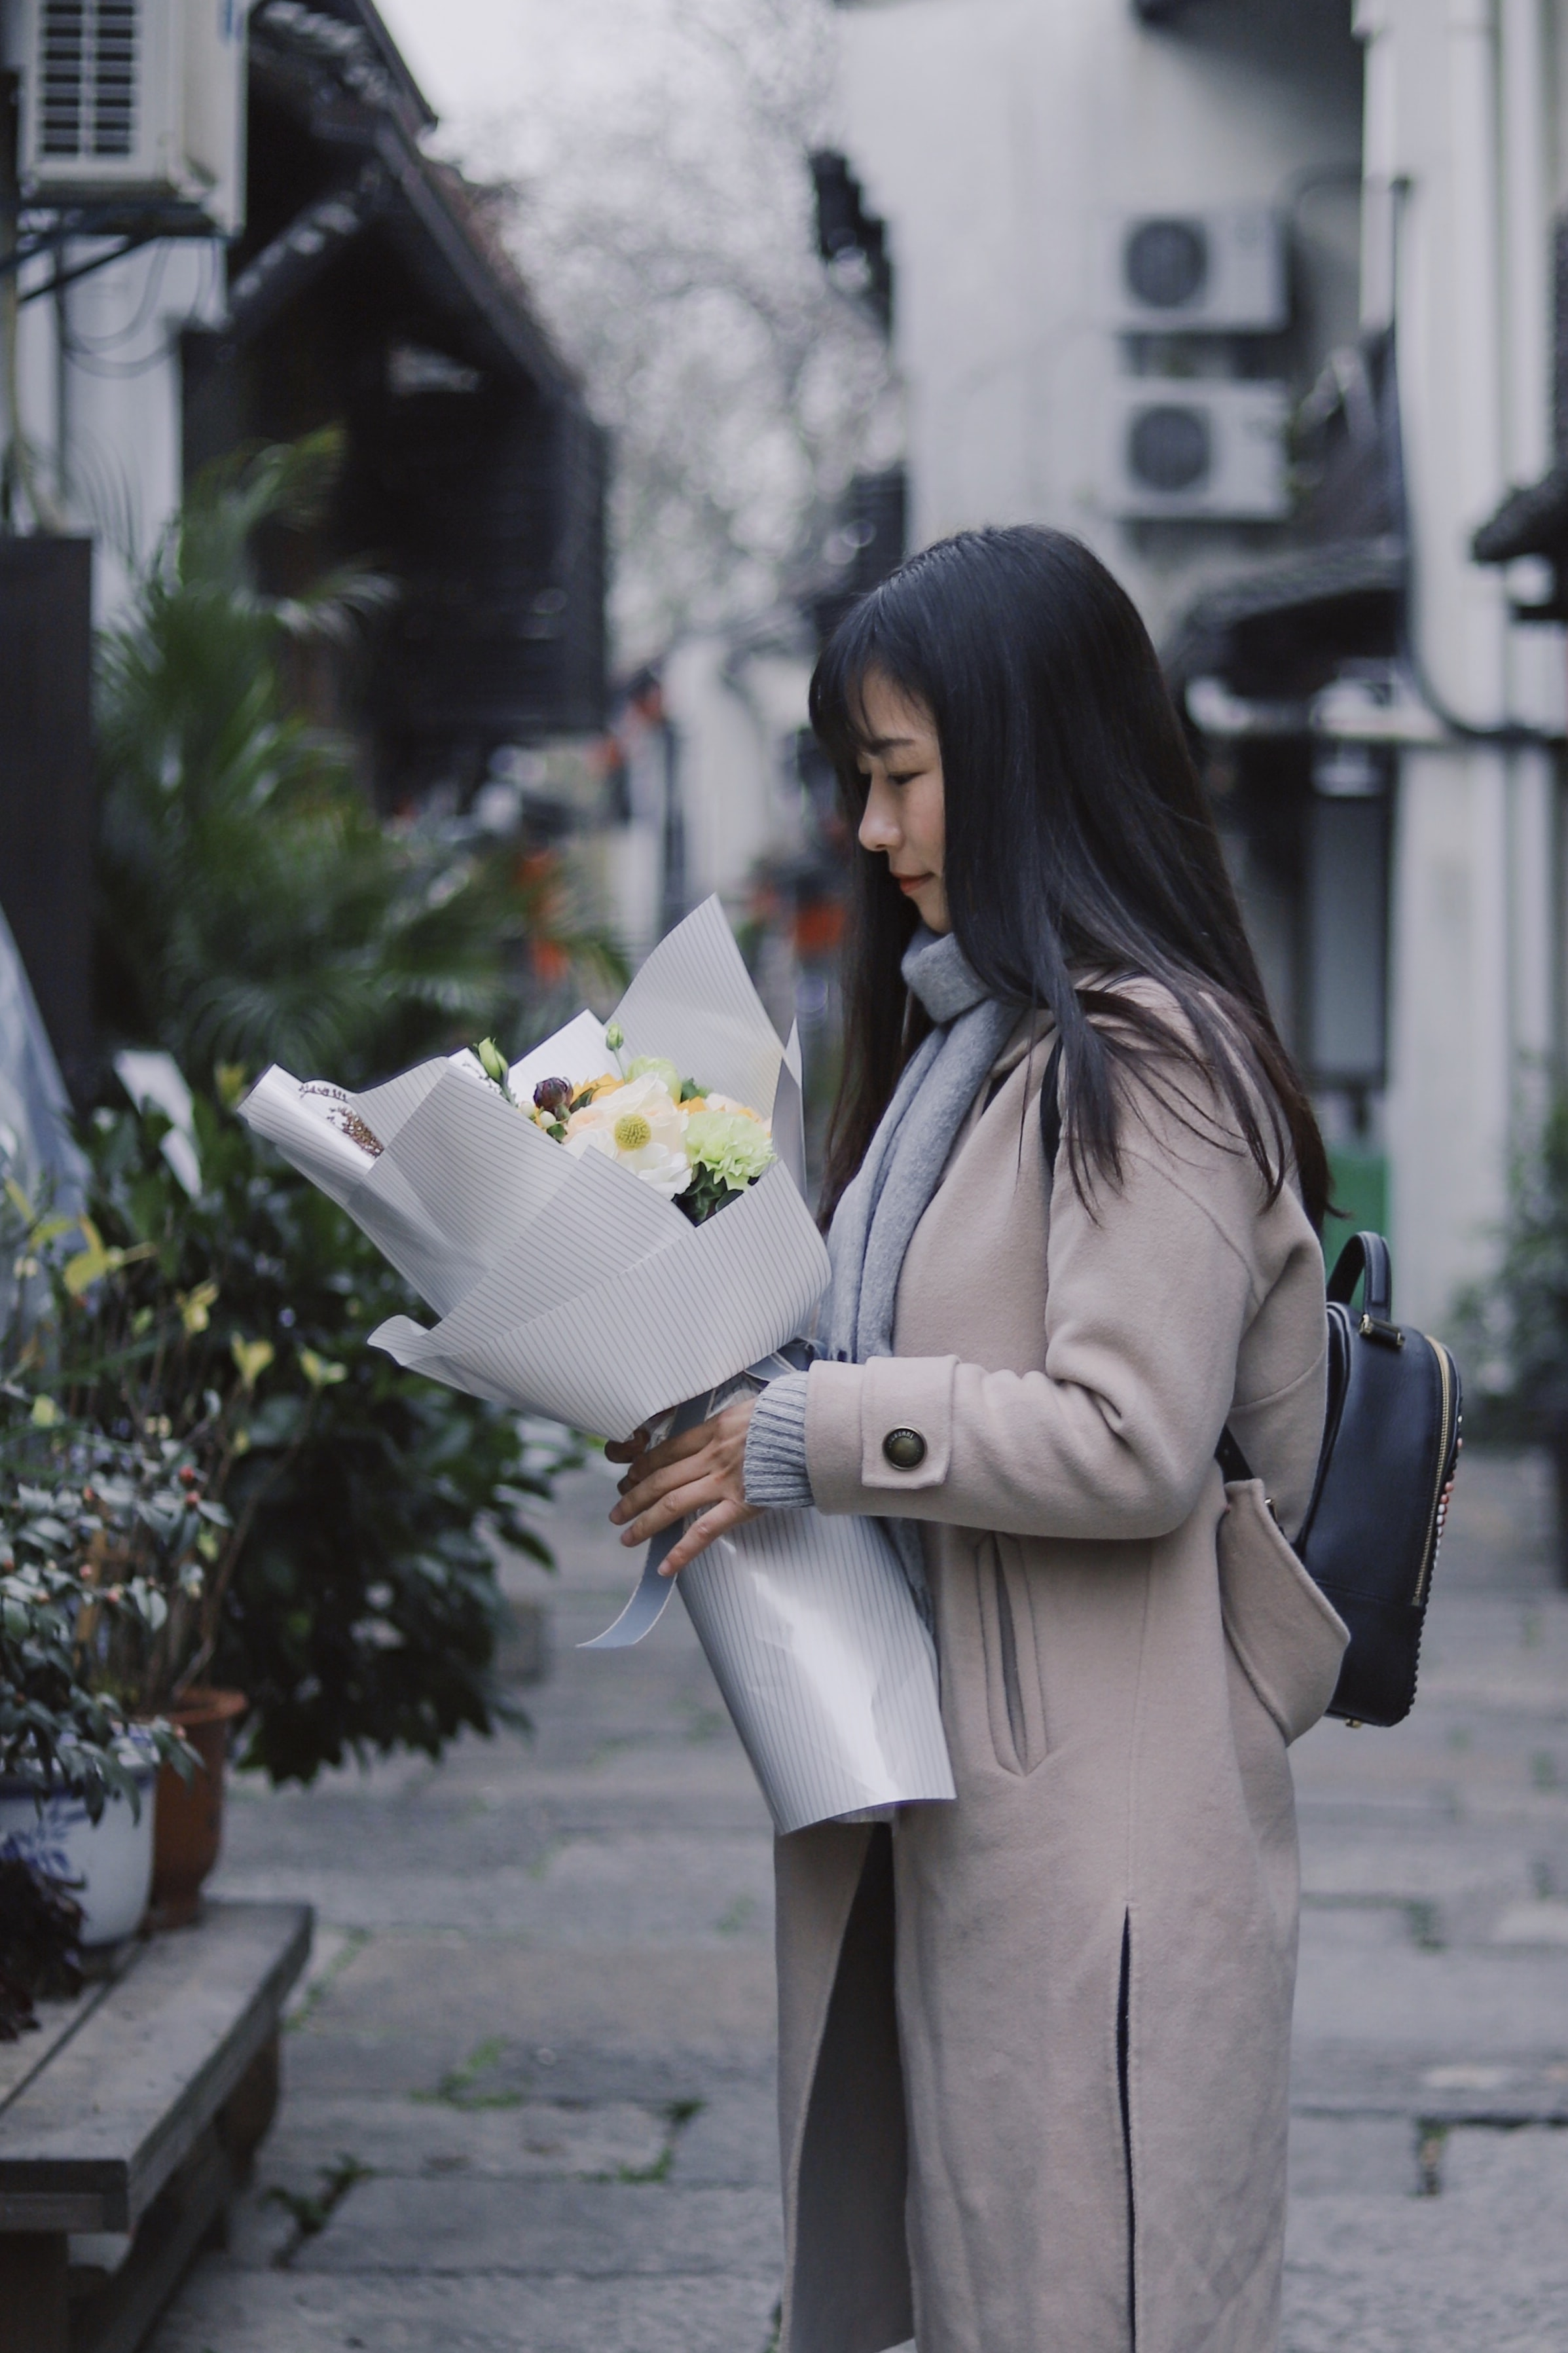 woman holding bouquet of flowers standing near green leaf plant